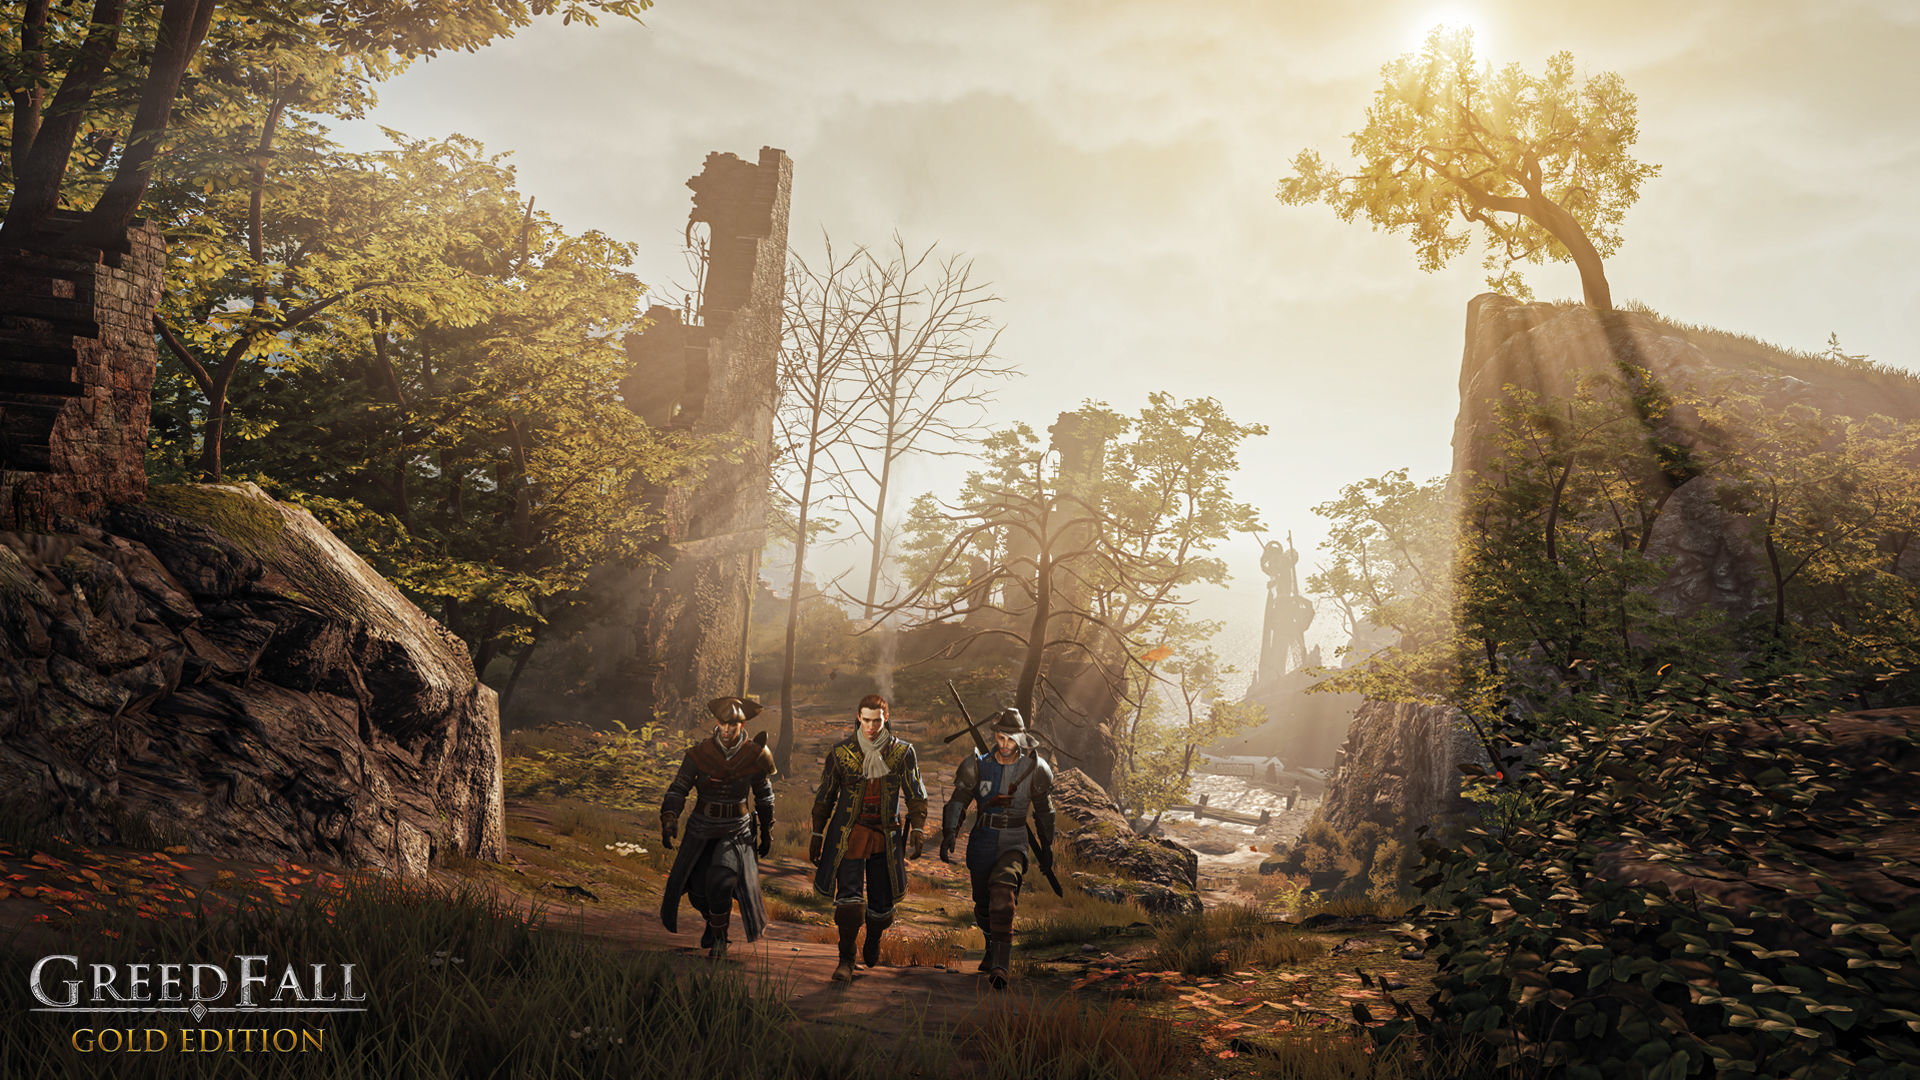 GreedFall Screenshot walking toward the viewer in a dusty forest dotted with ruined buildings.